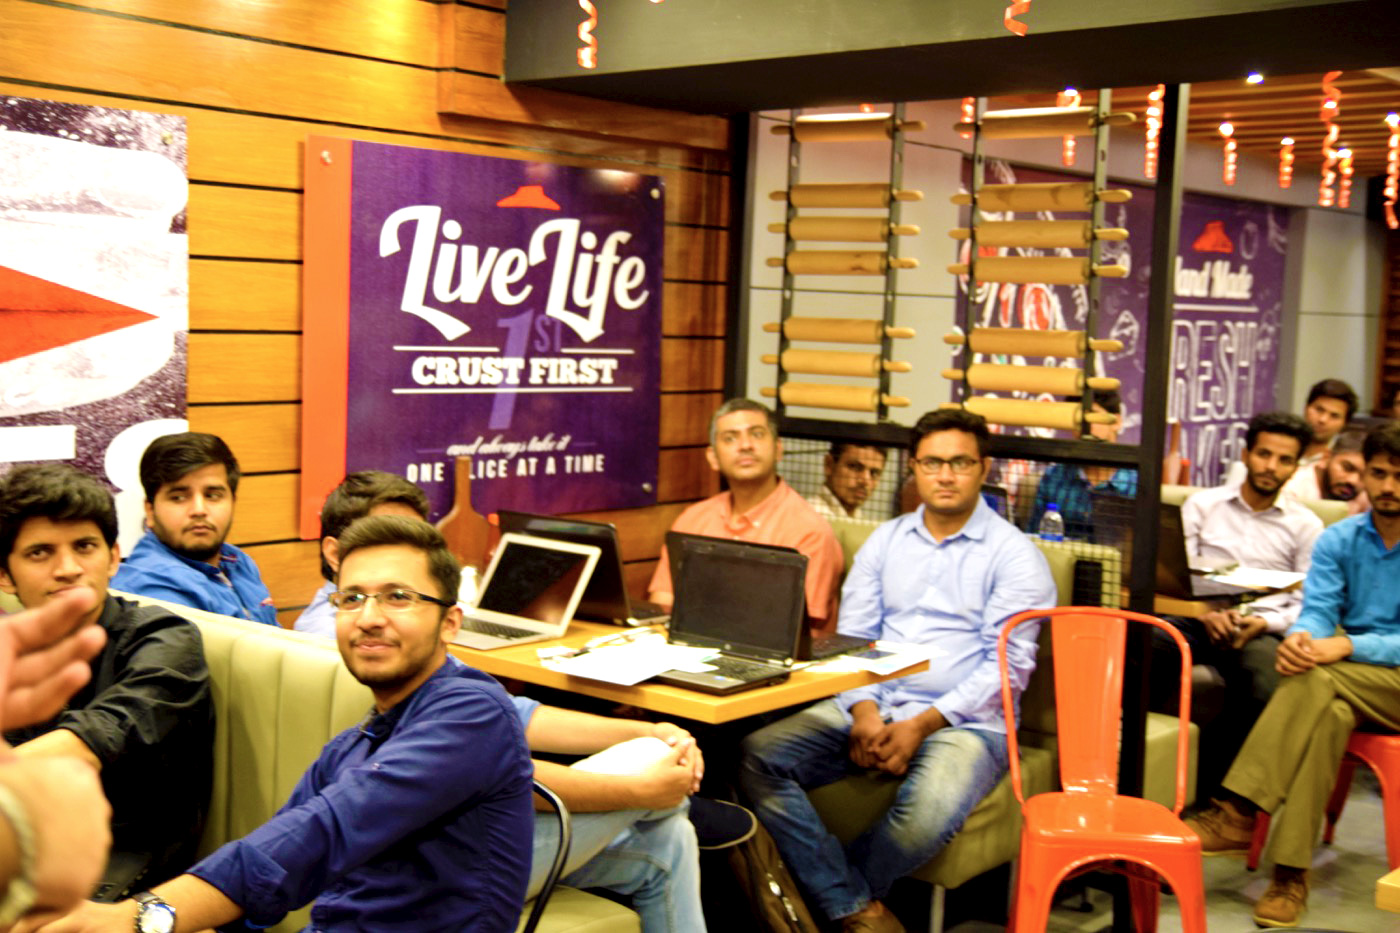 Hacktoberfest 2017 Event Lahore Audience